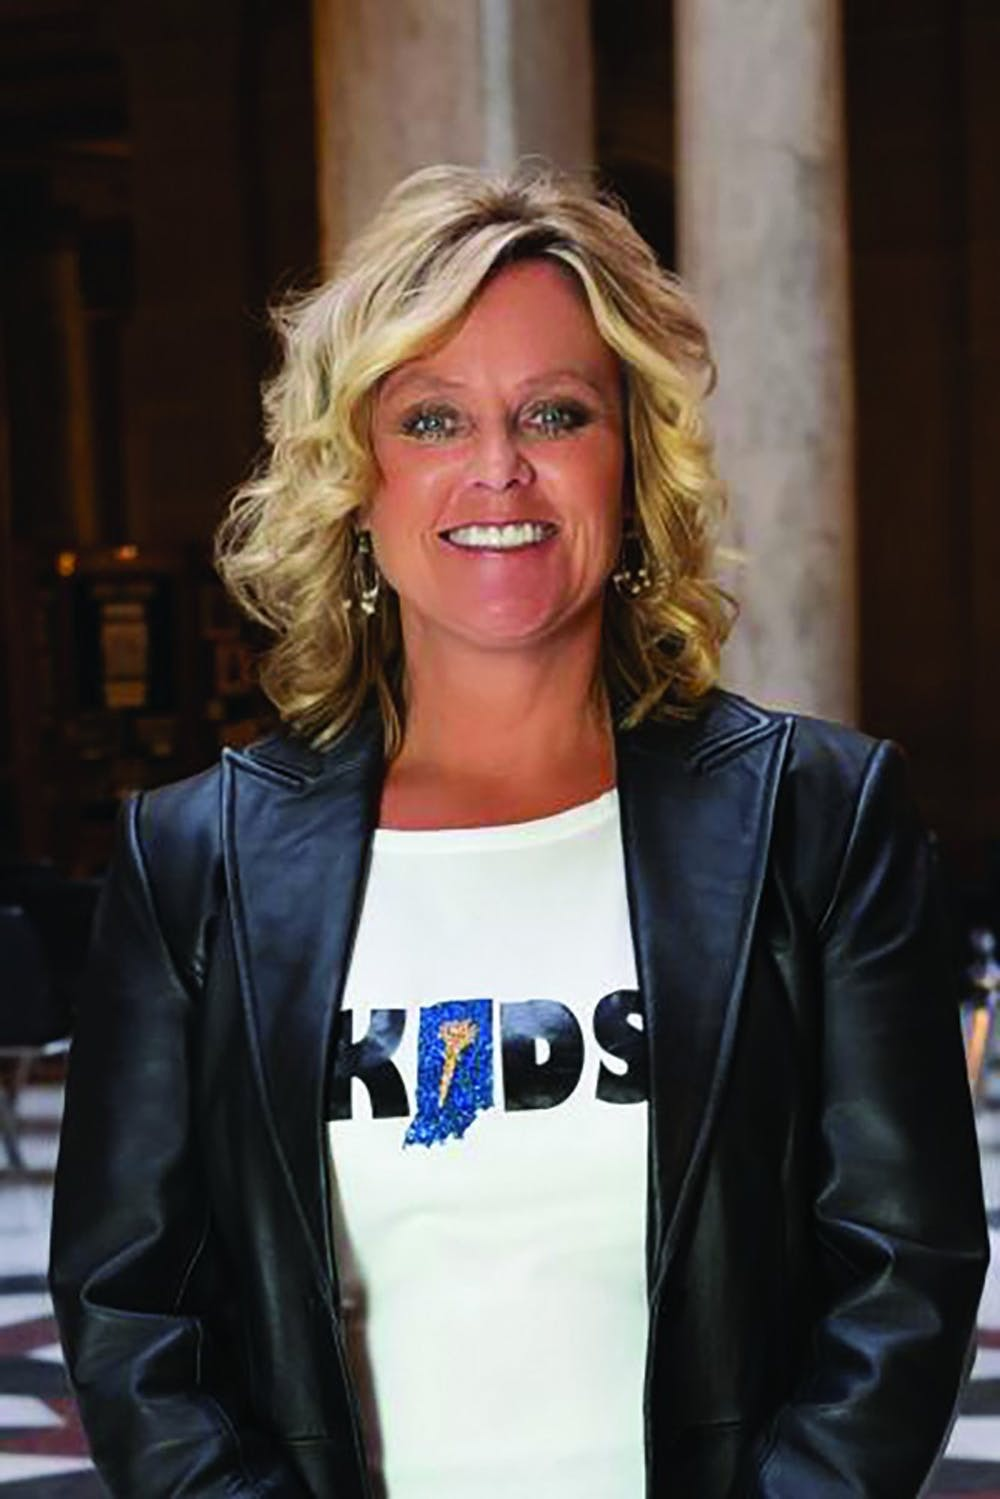 Ball State alumna serves as Indiana Superintendent of Public Instruction